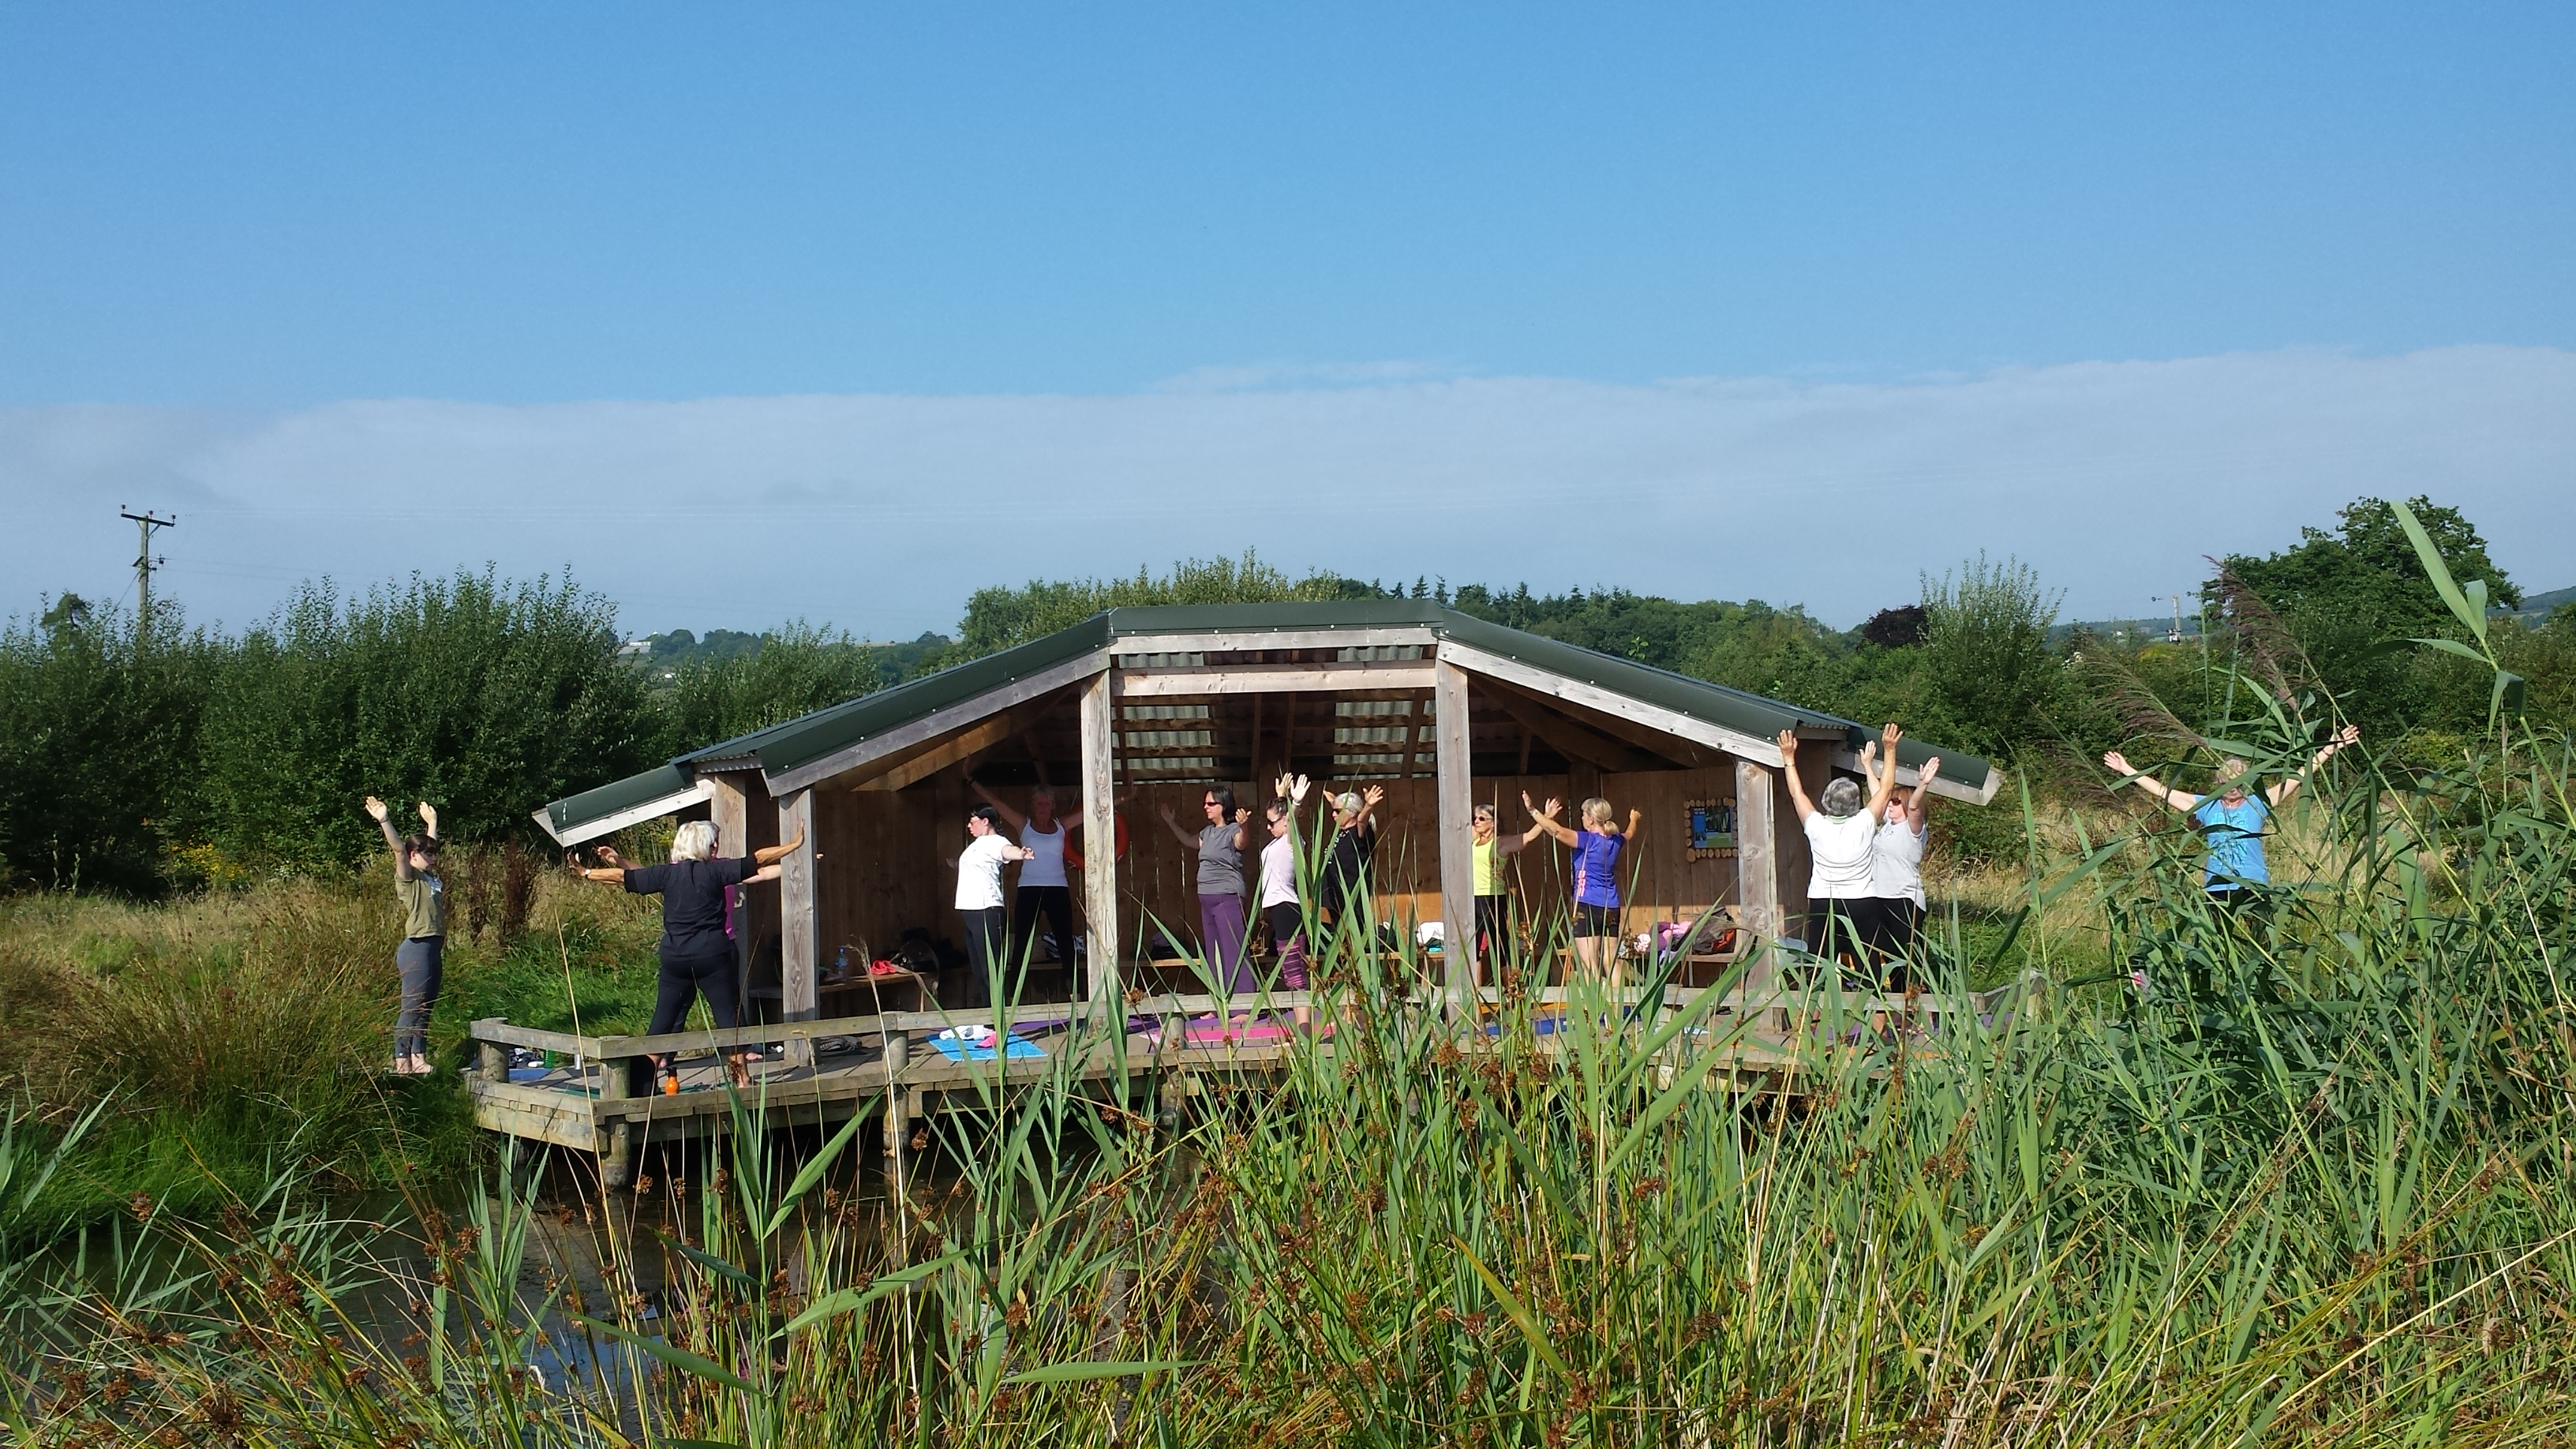 Yoga at Seaton Wetlands 1 Aug